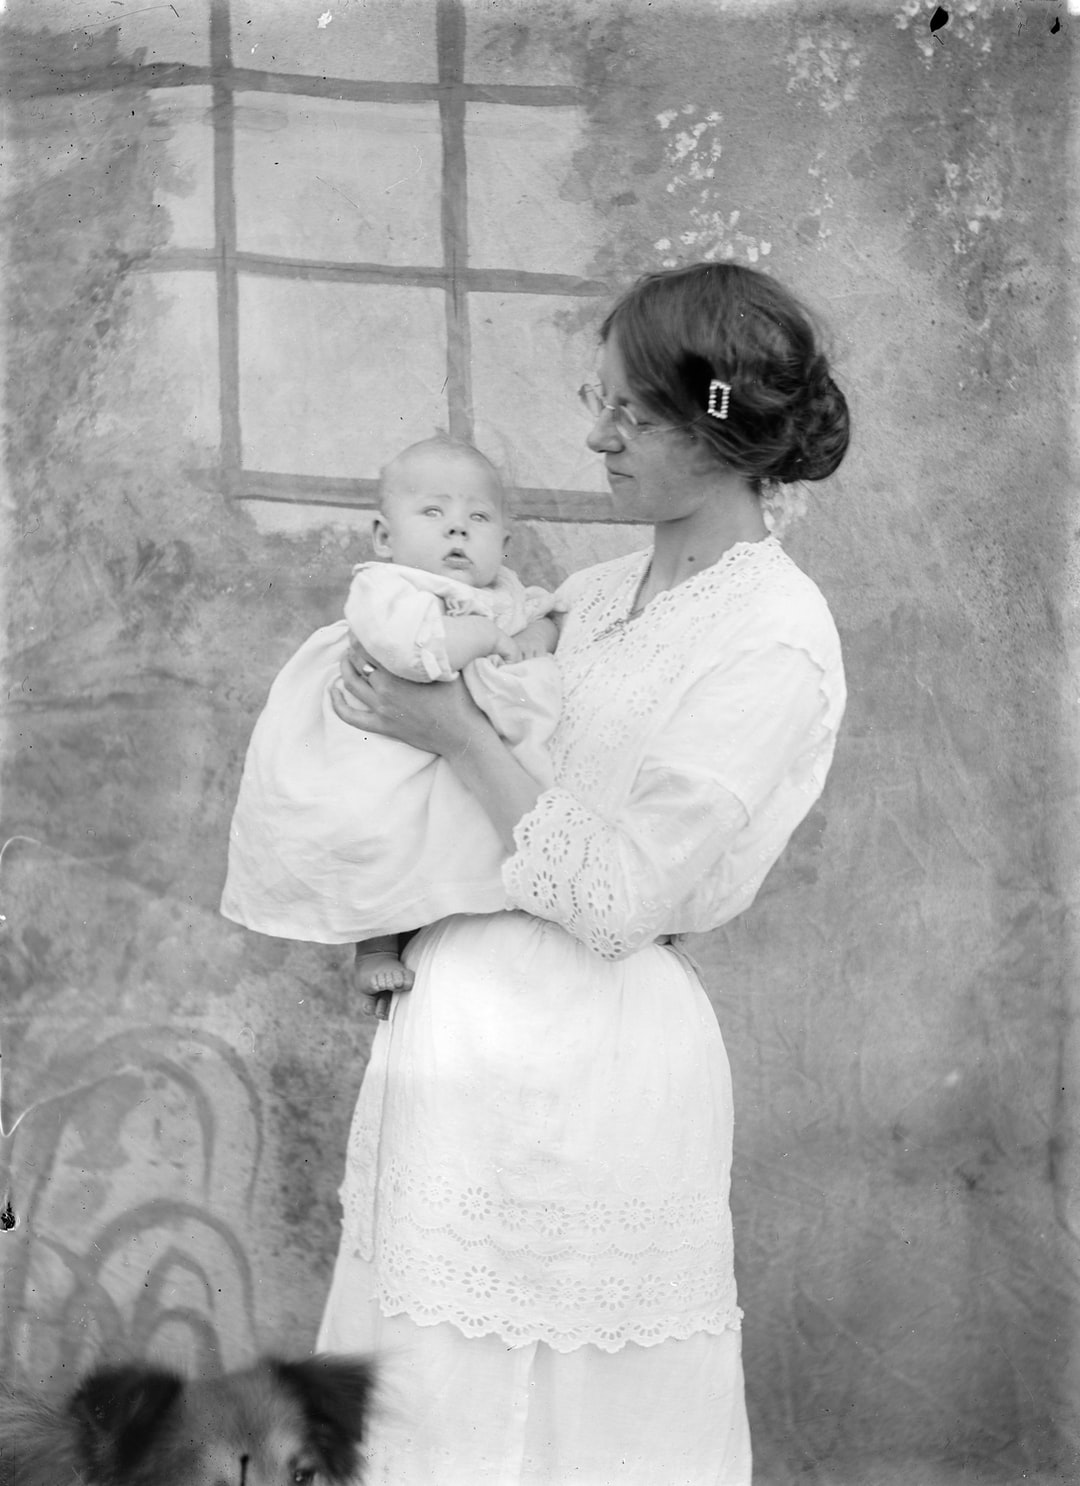 Woman and Baby, 1890